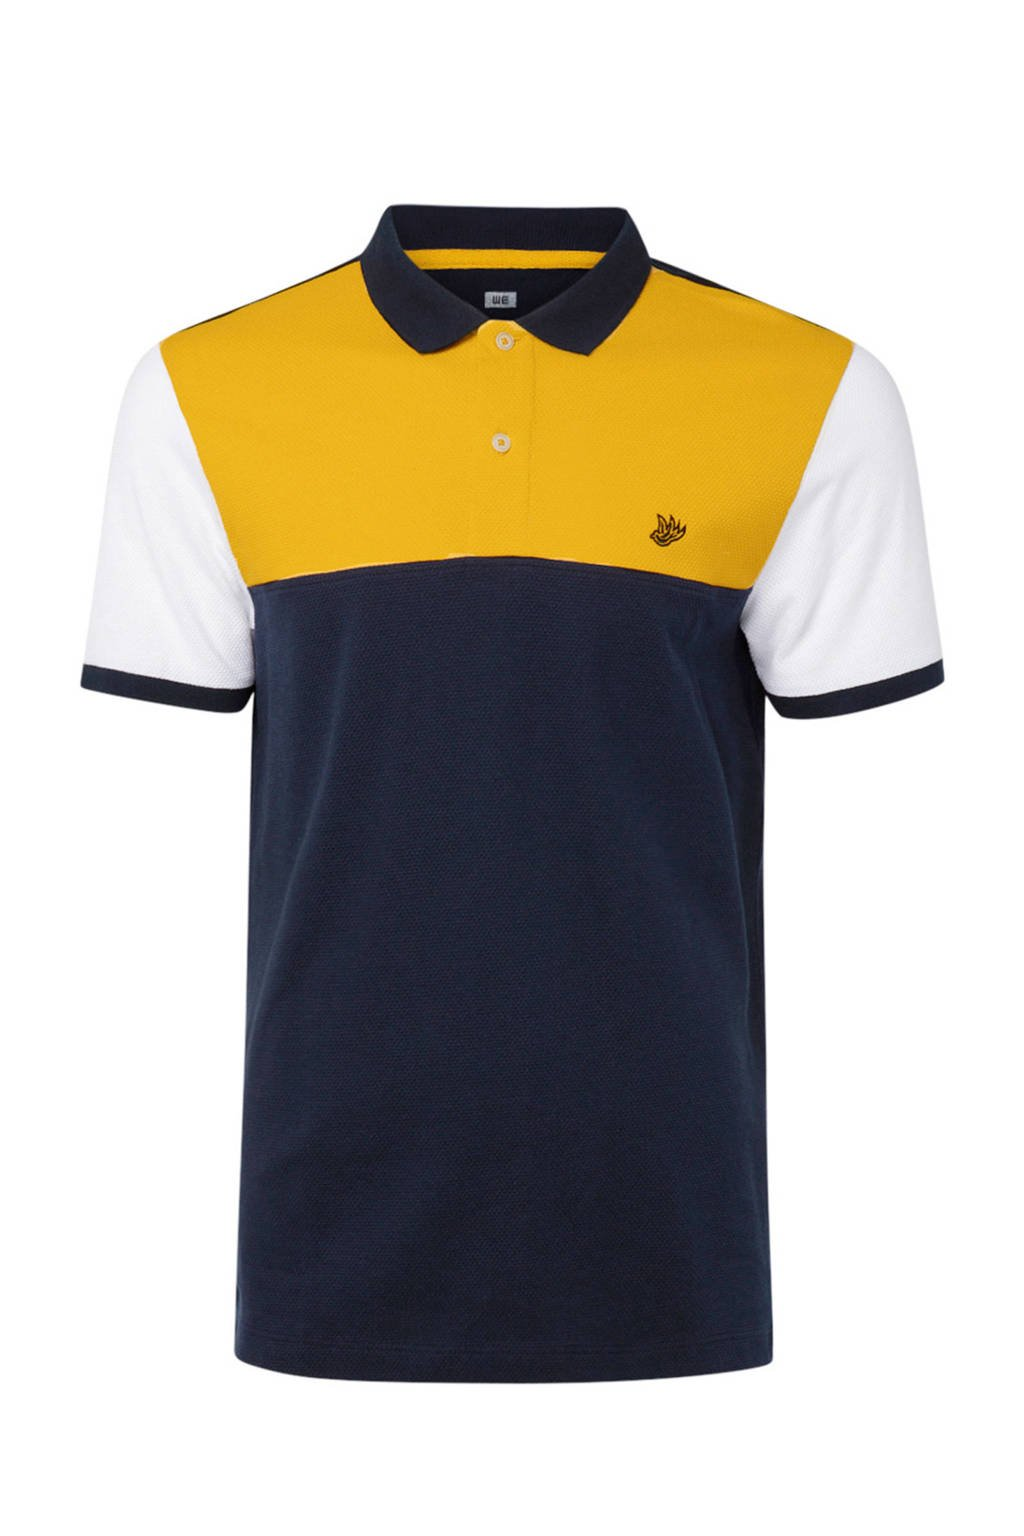 WE Fashion polo met colourblock dessin, Blauw/geel/wit